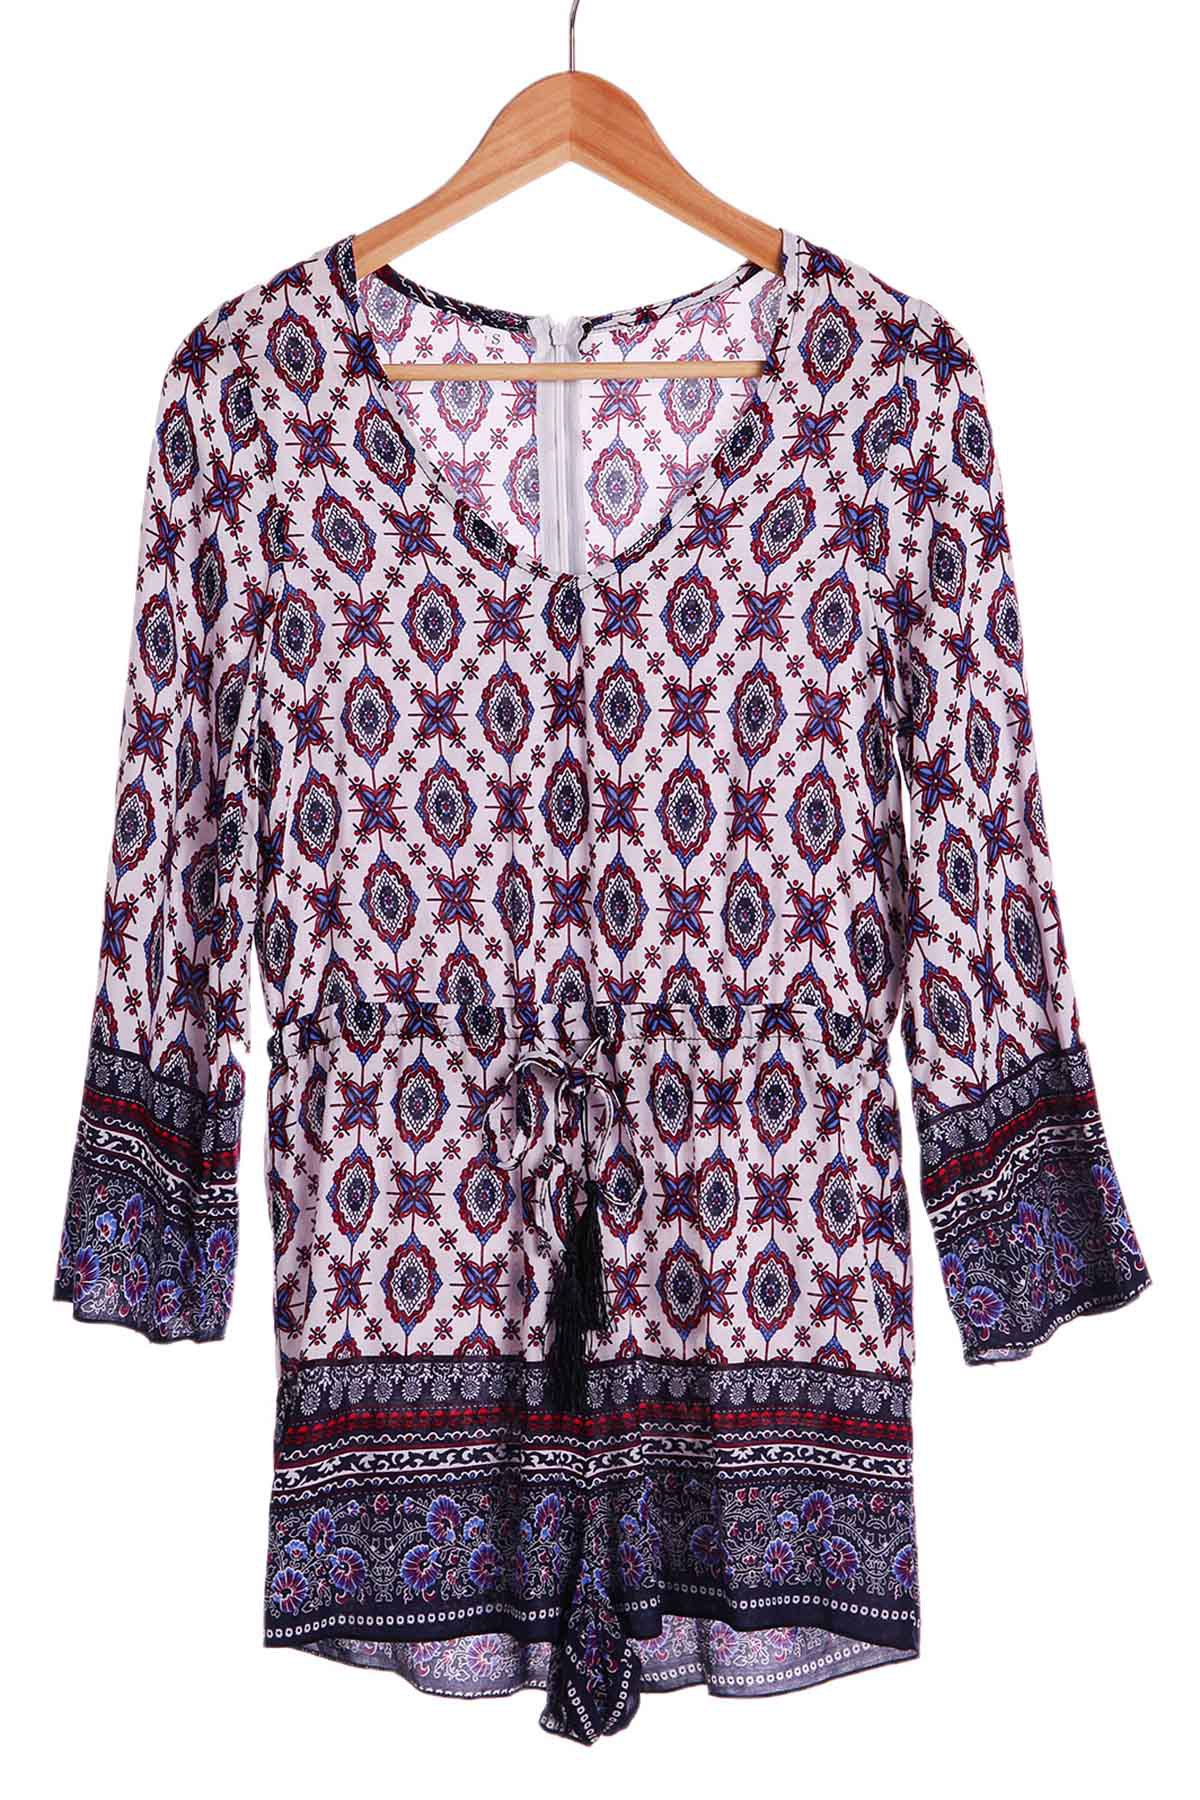 Ethnic Tribe Print Plunging Neck Long Sleeve Romper For Women - COLORMIX S